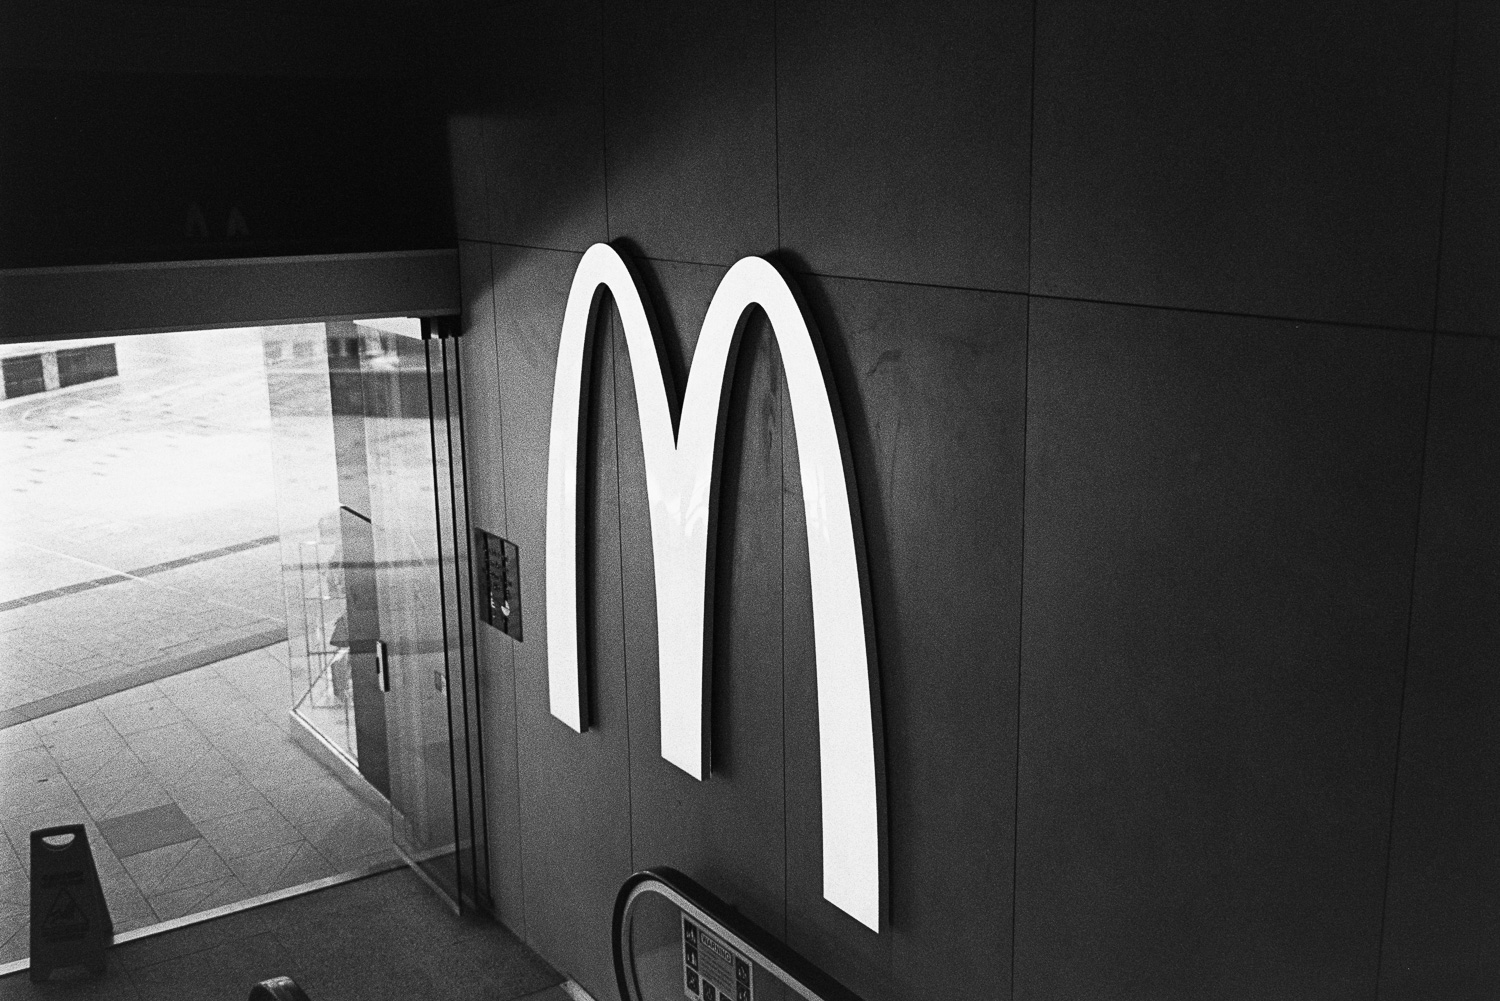 All hail the Golden Arches.